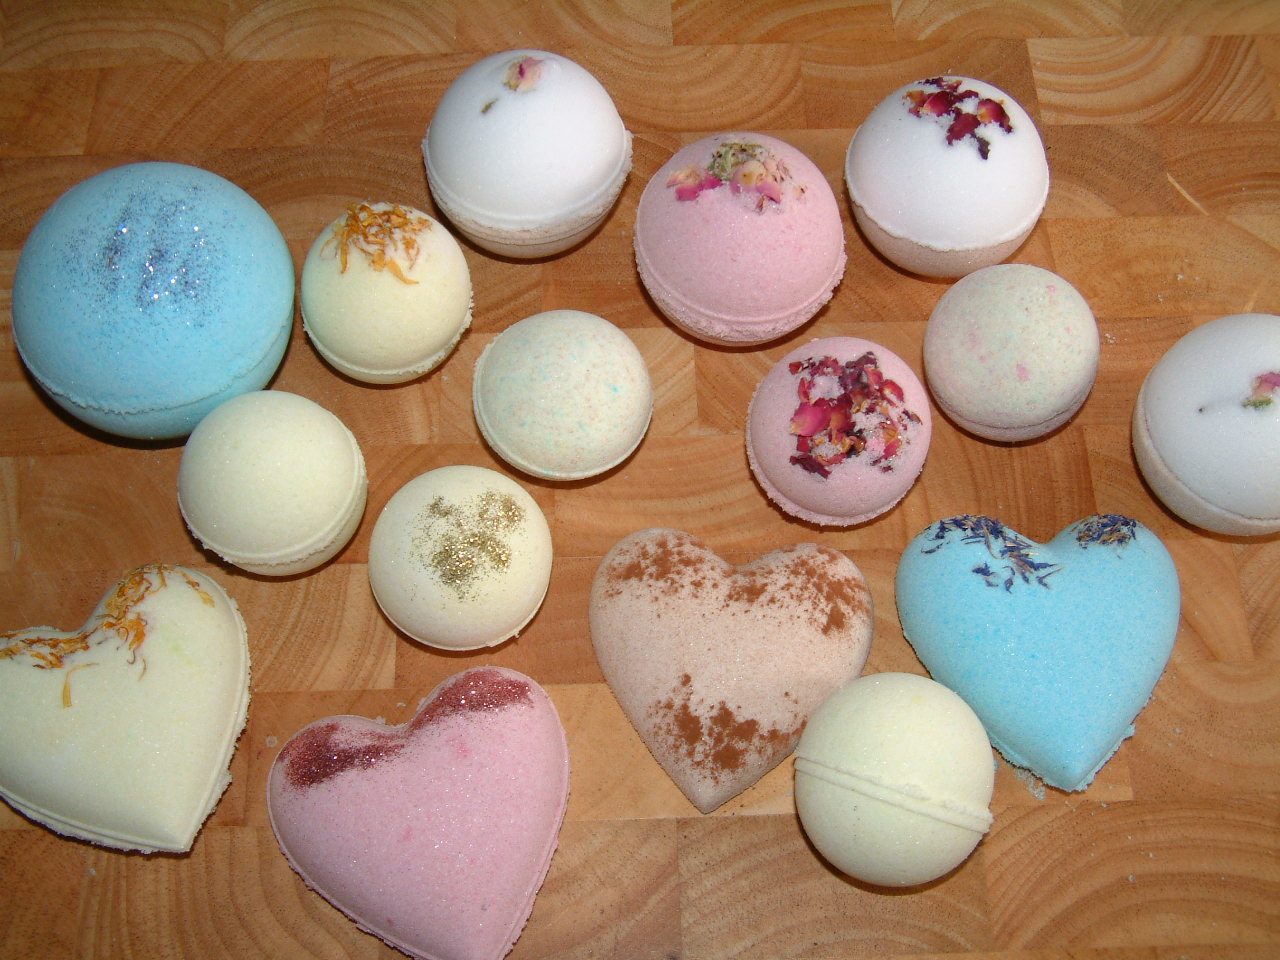 How to make bath bombs 5 easy recipes going evergreen for Homemade diy